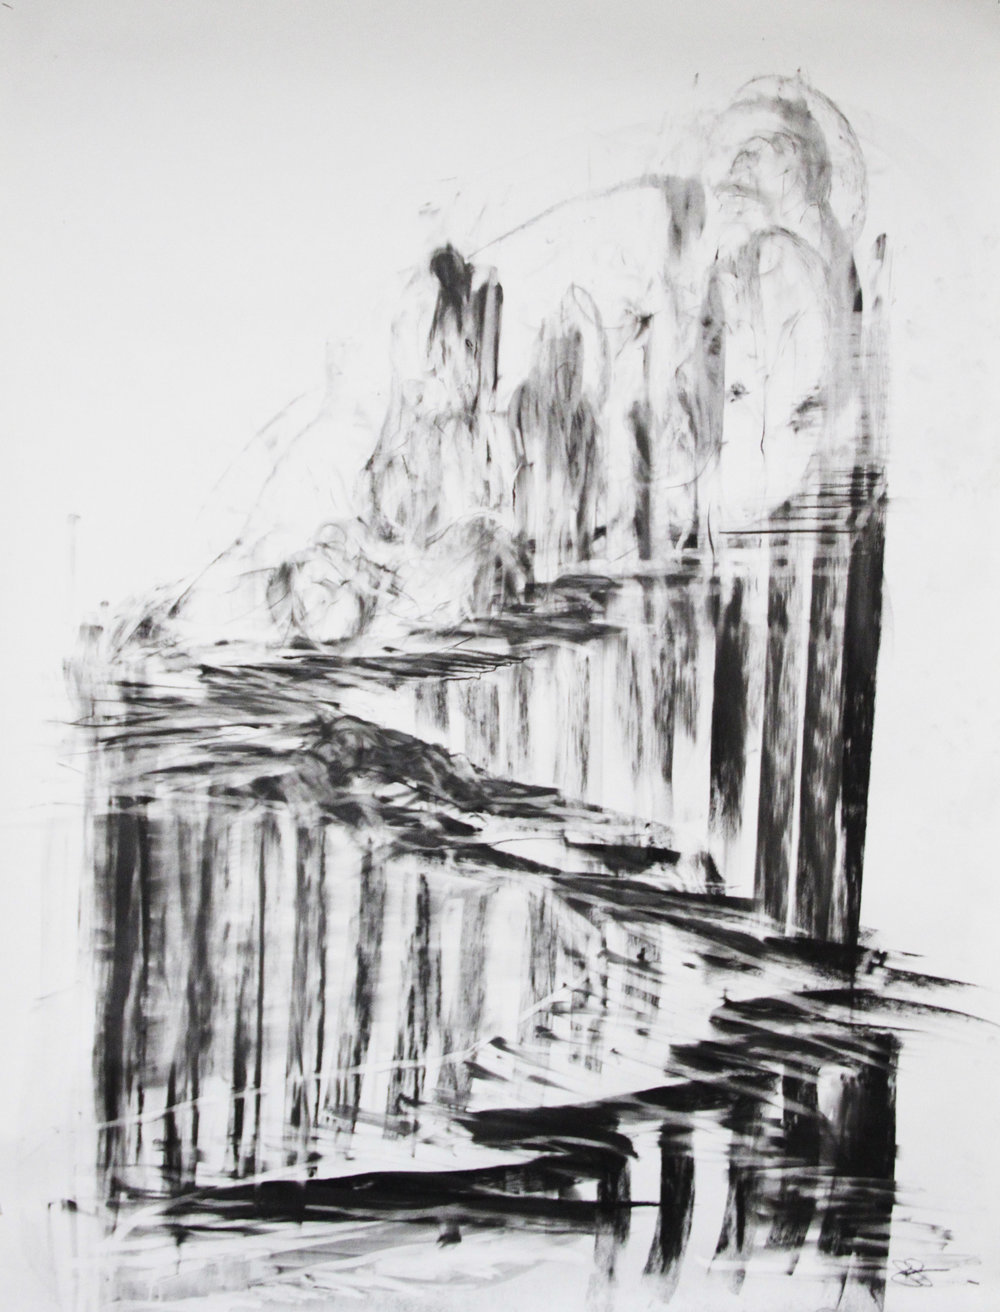 Charcoal_Fabriano paper_90cm x 90cm